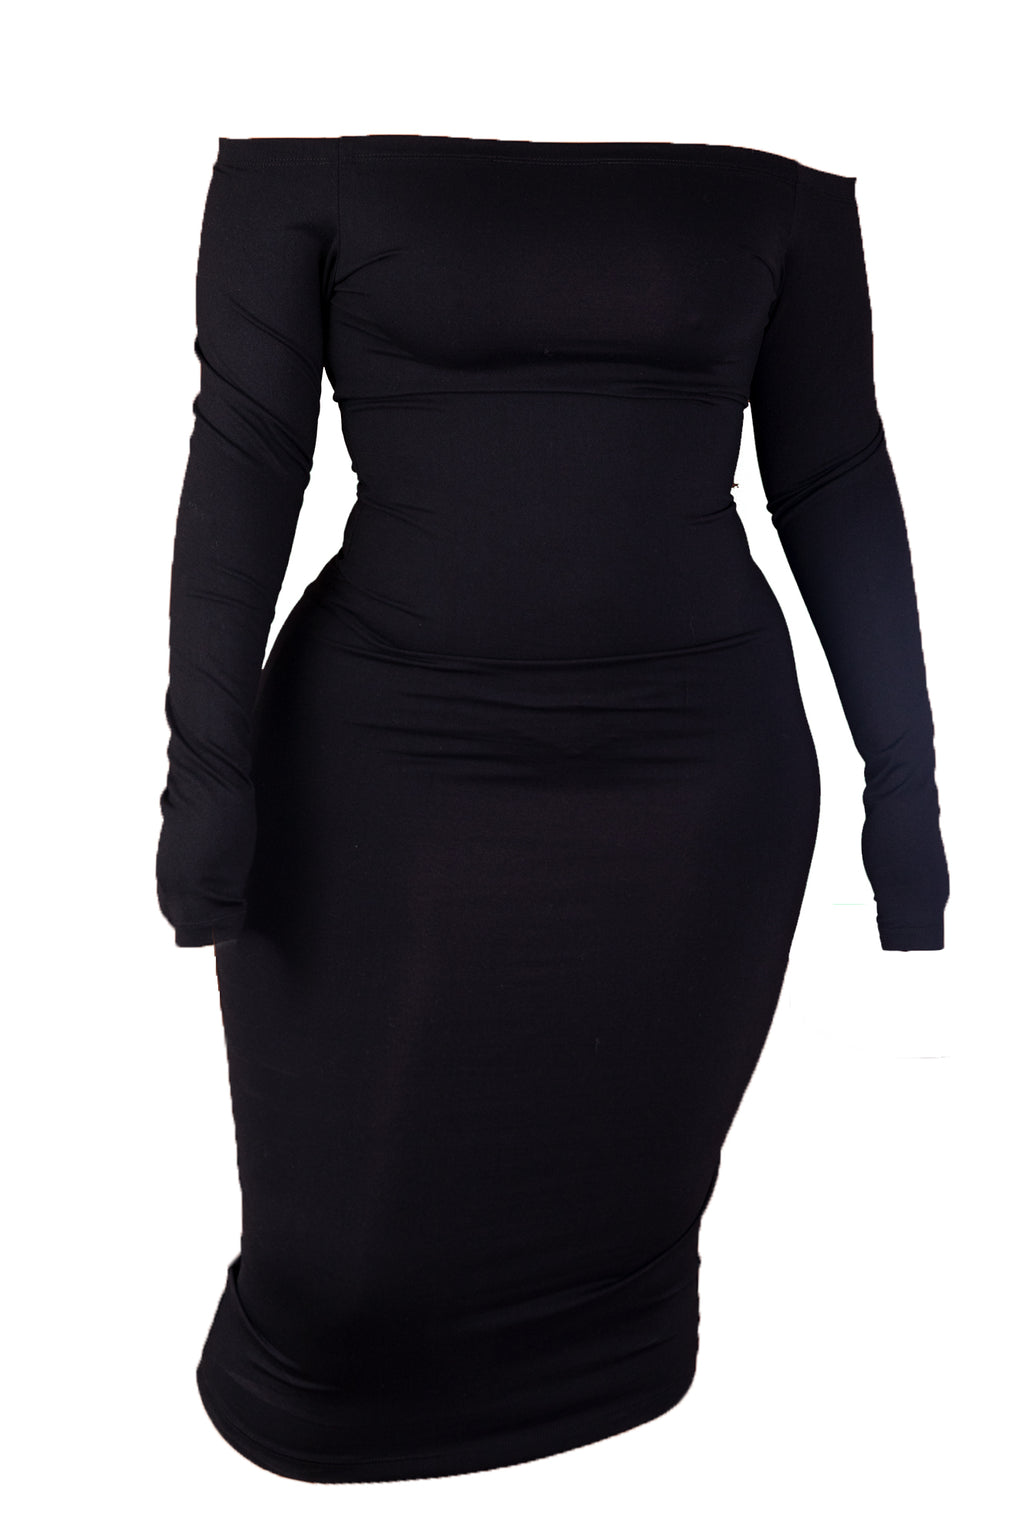 The Black Wifey Shaping *MIDI* 2.0